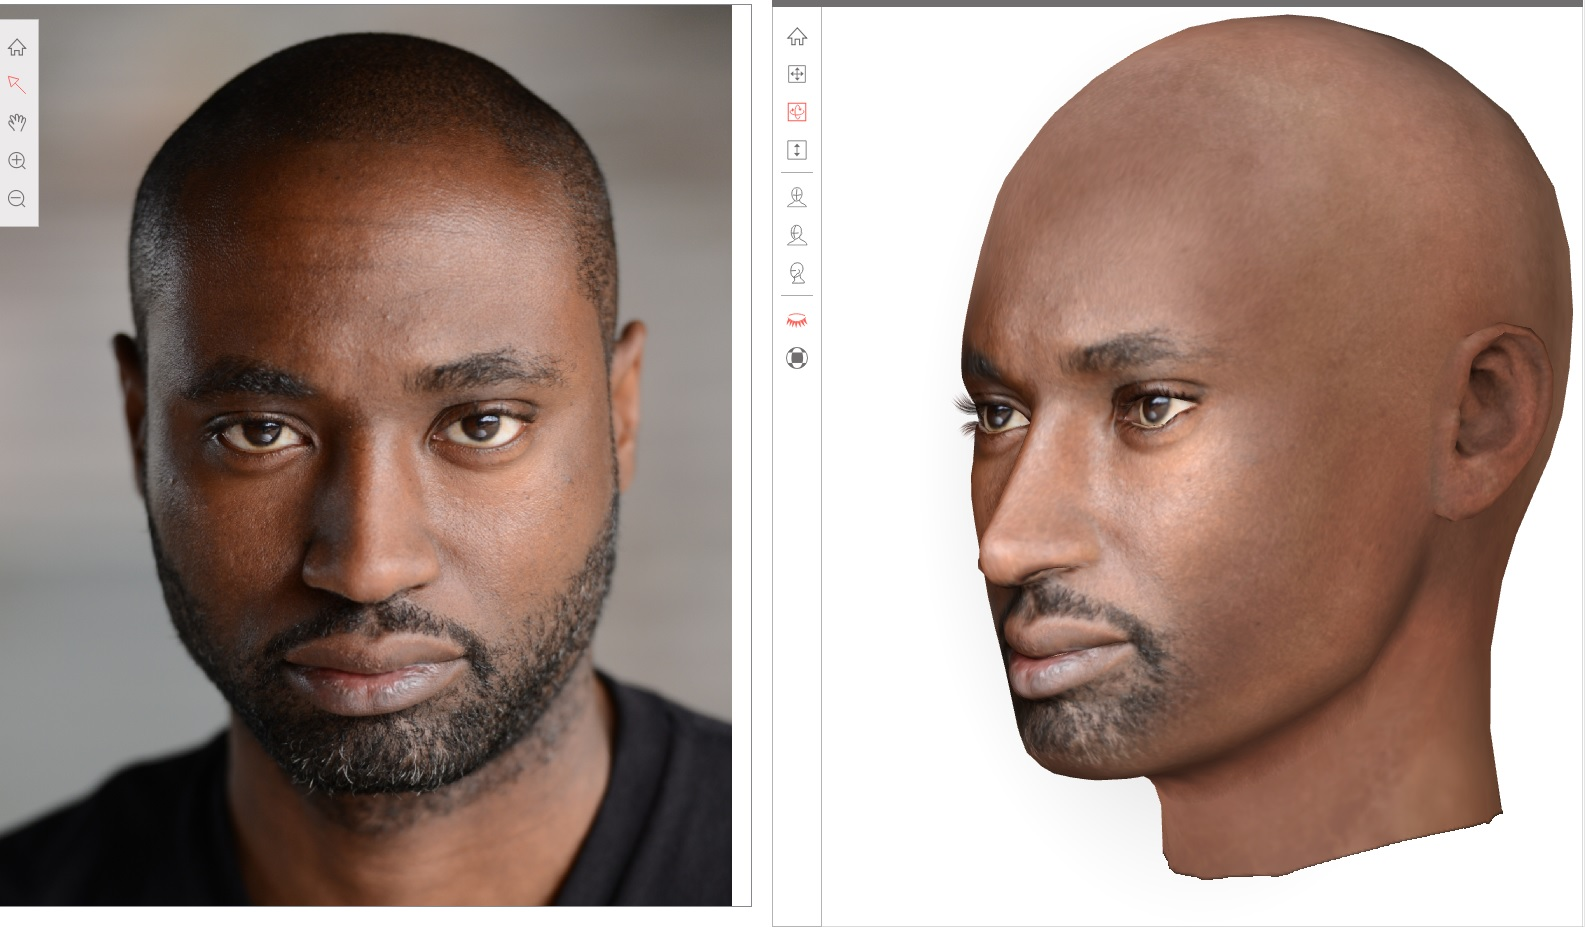 Turn your picture into a real life 3d animation